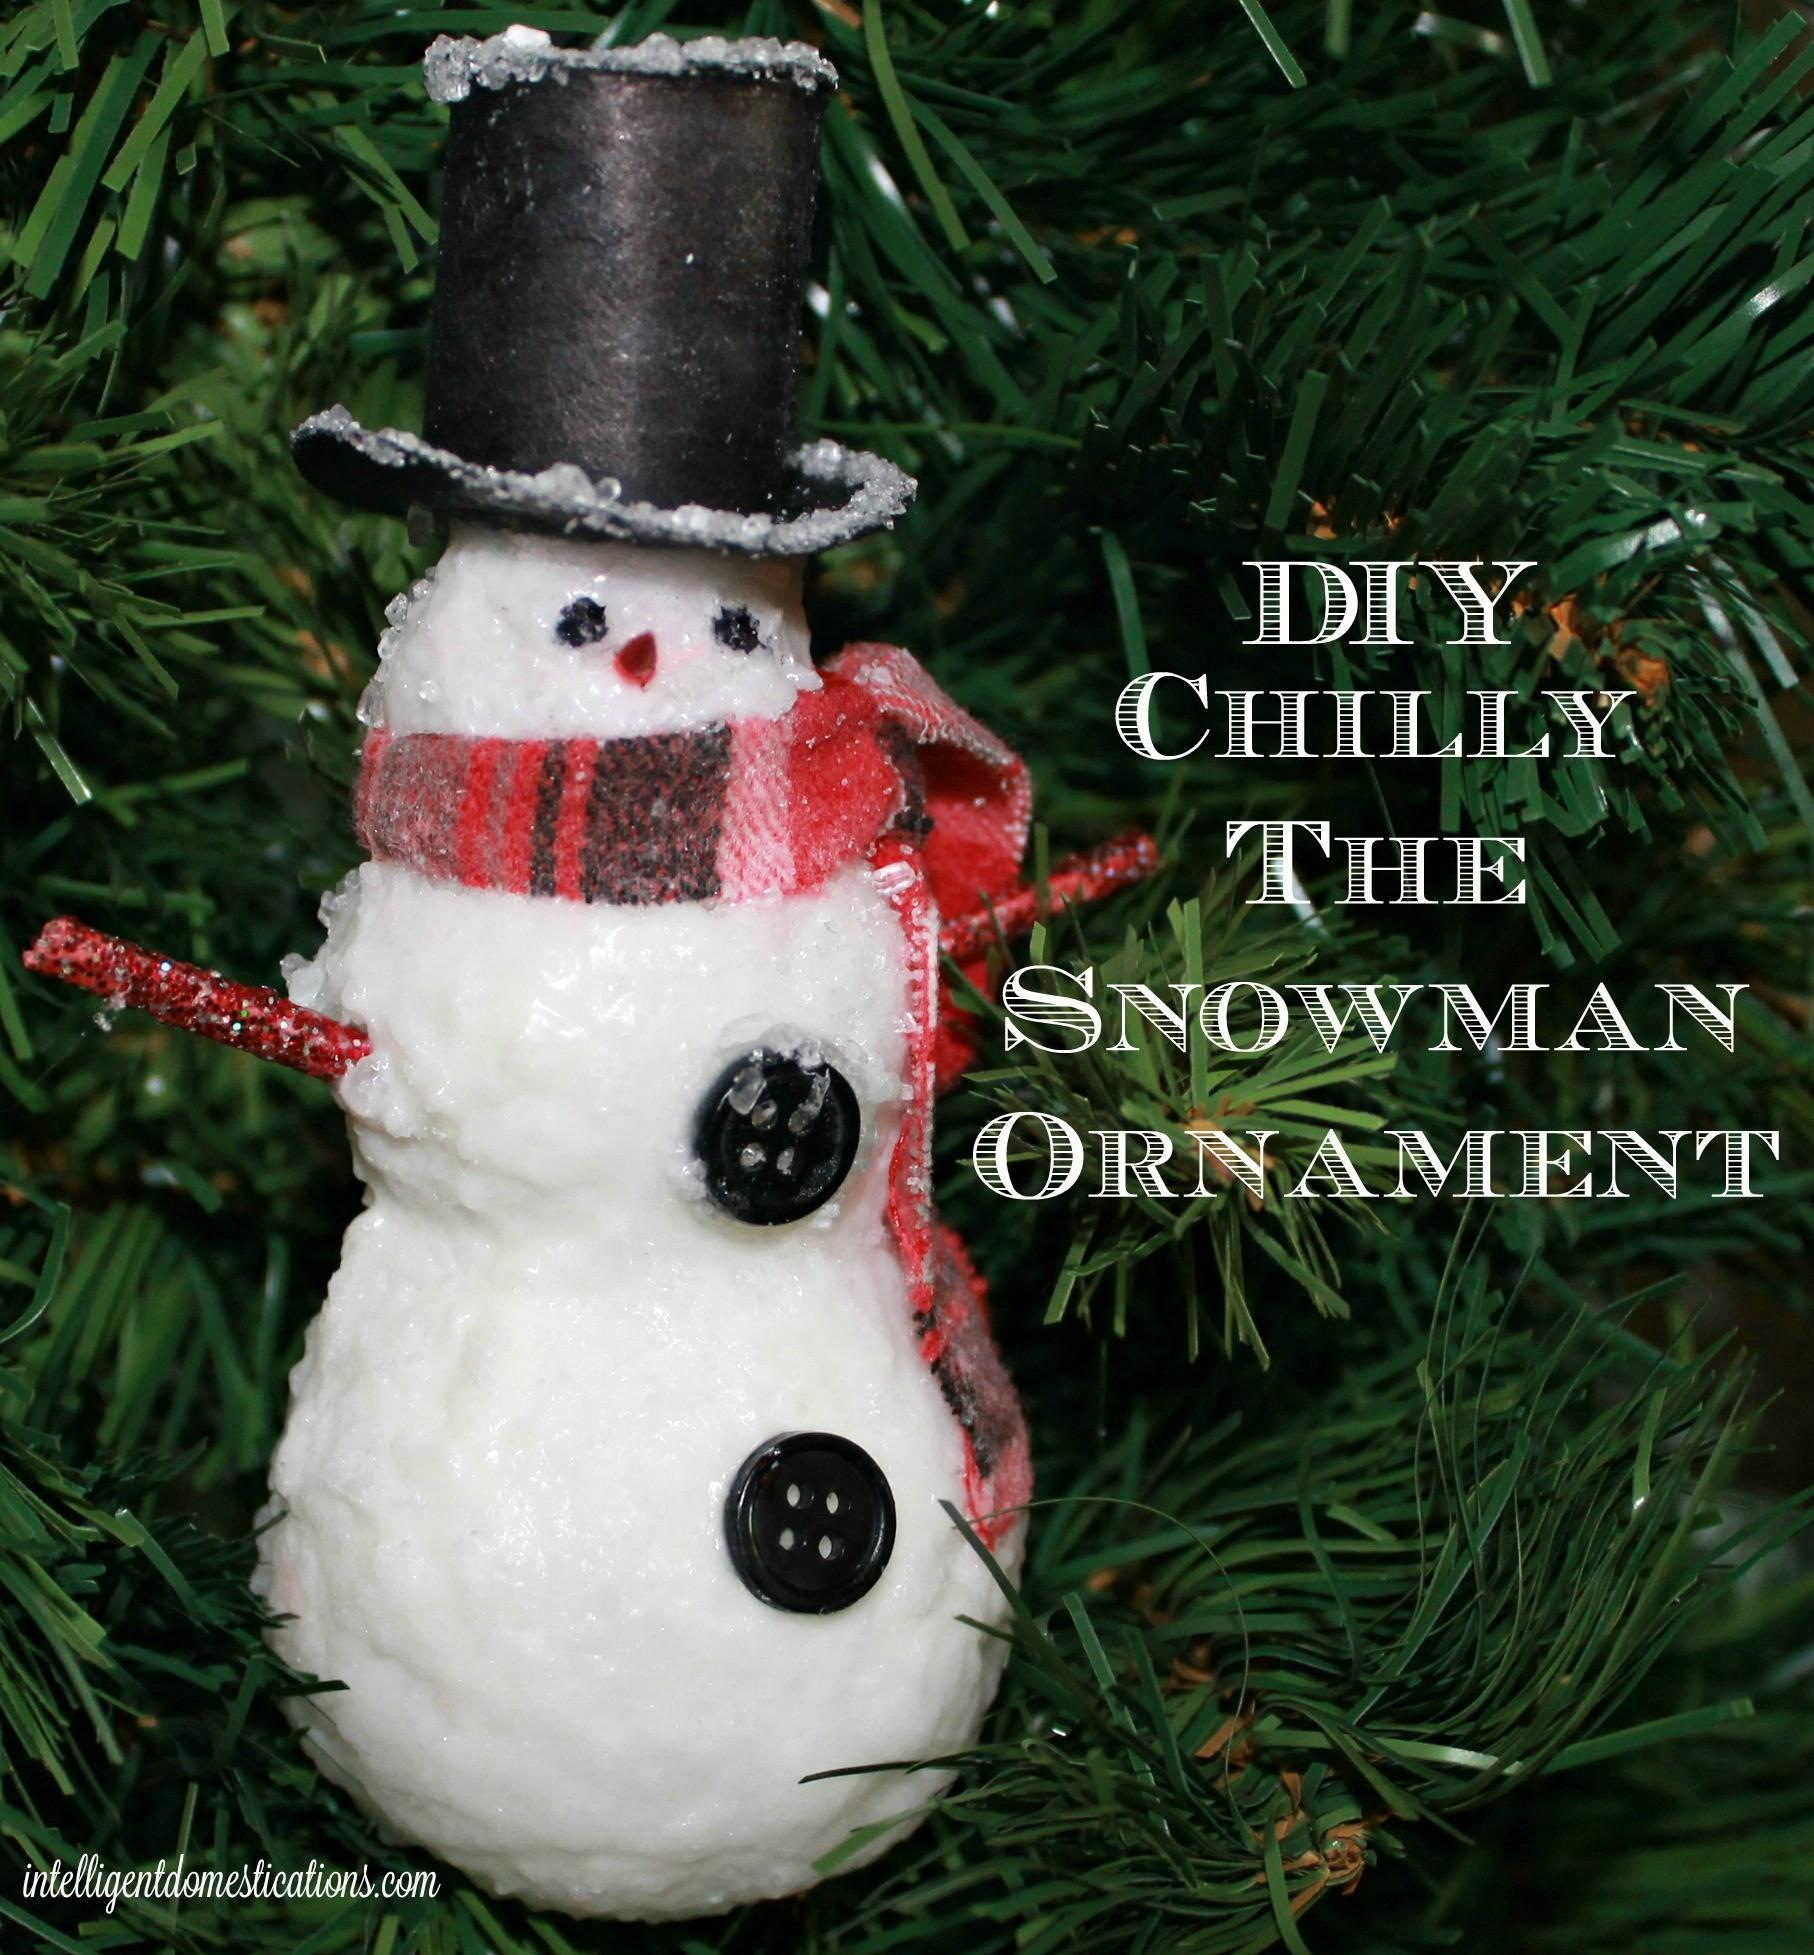 Diy Chilly Snowman Ornament